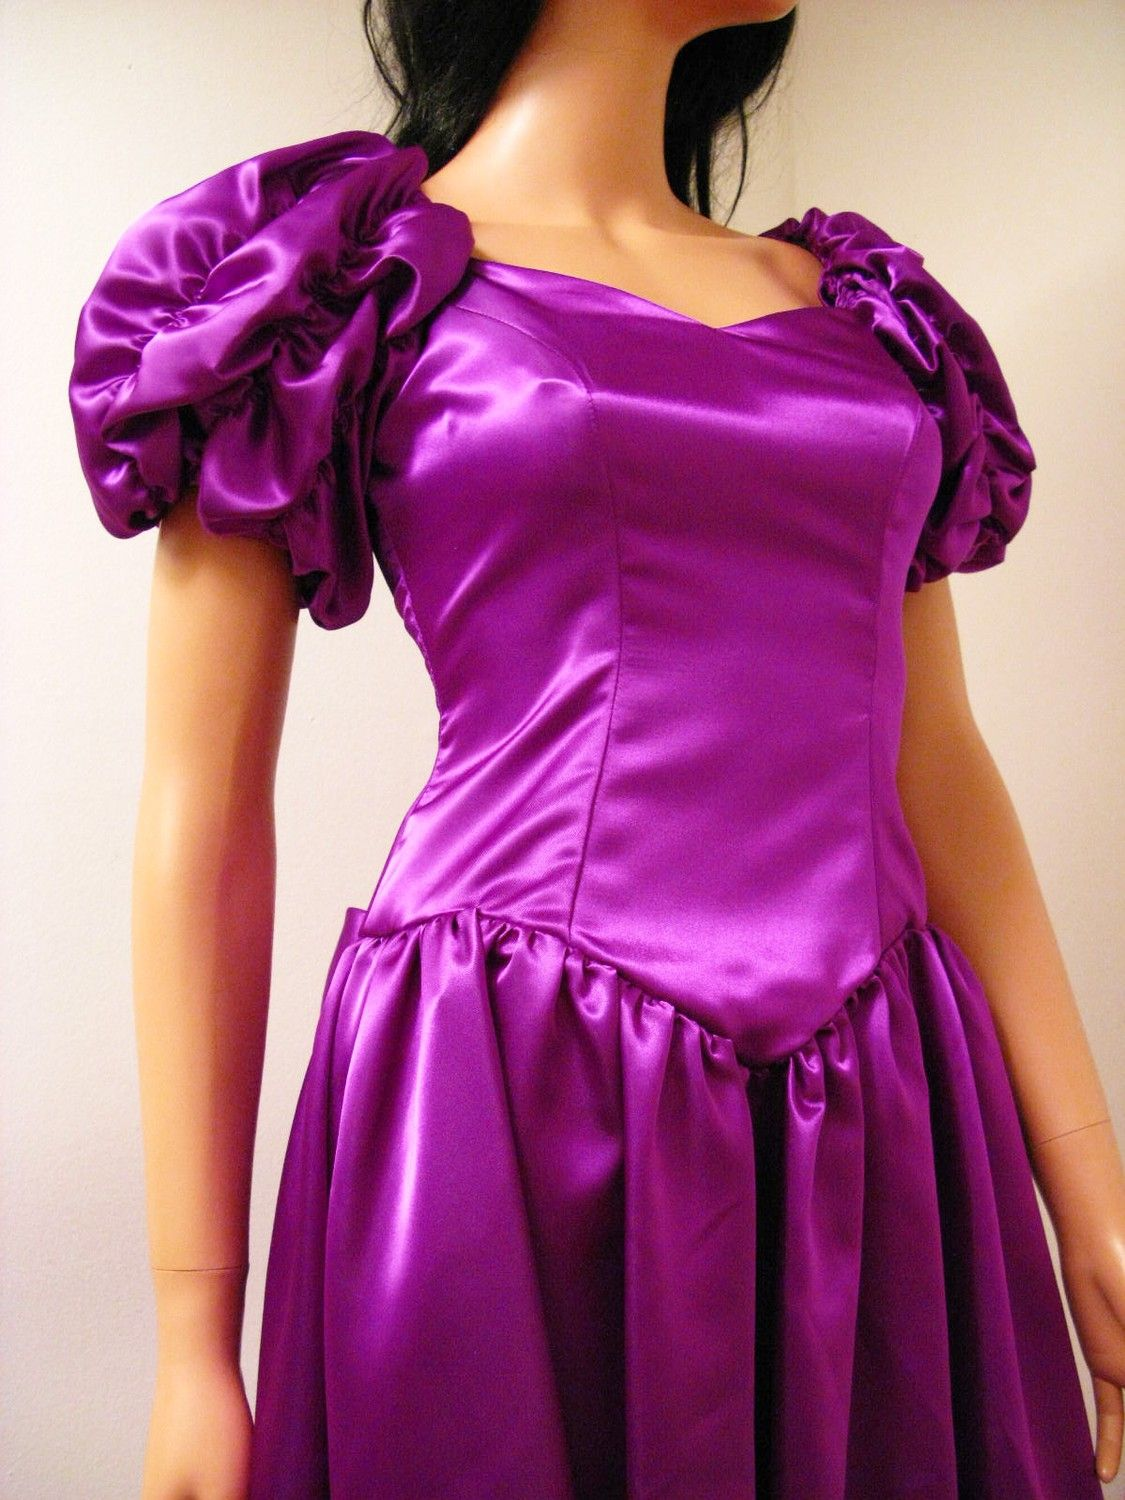 1980 prom dresses - Google Search | LBR Conference | Pinterest ...